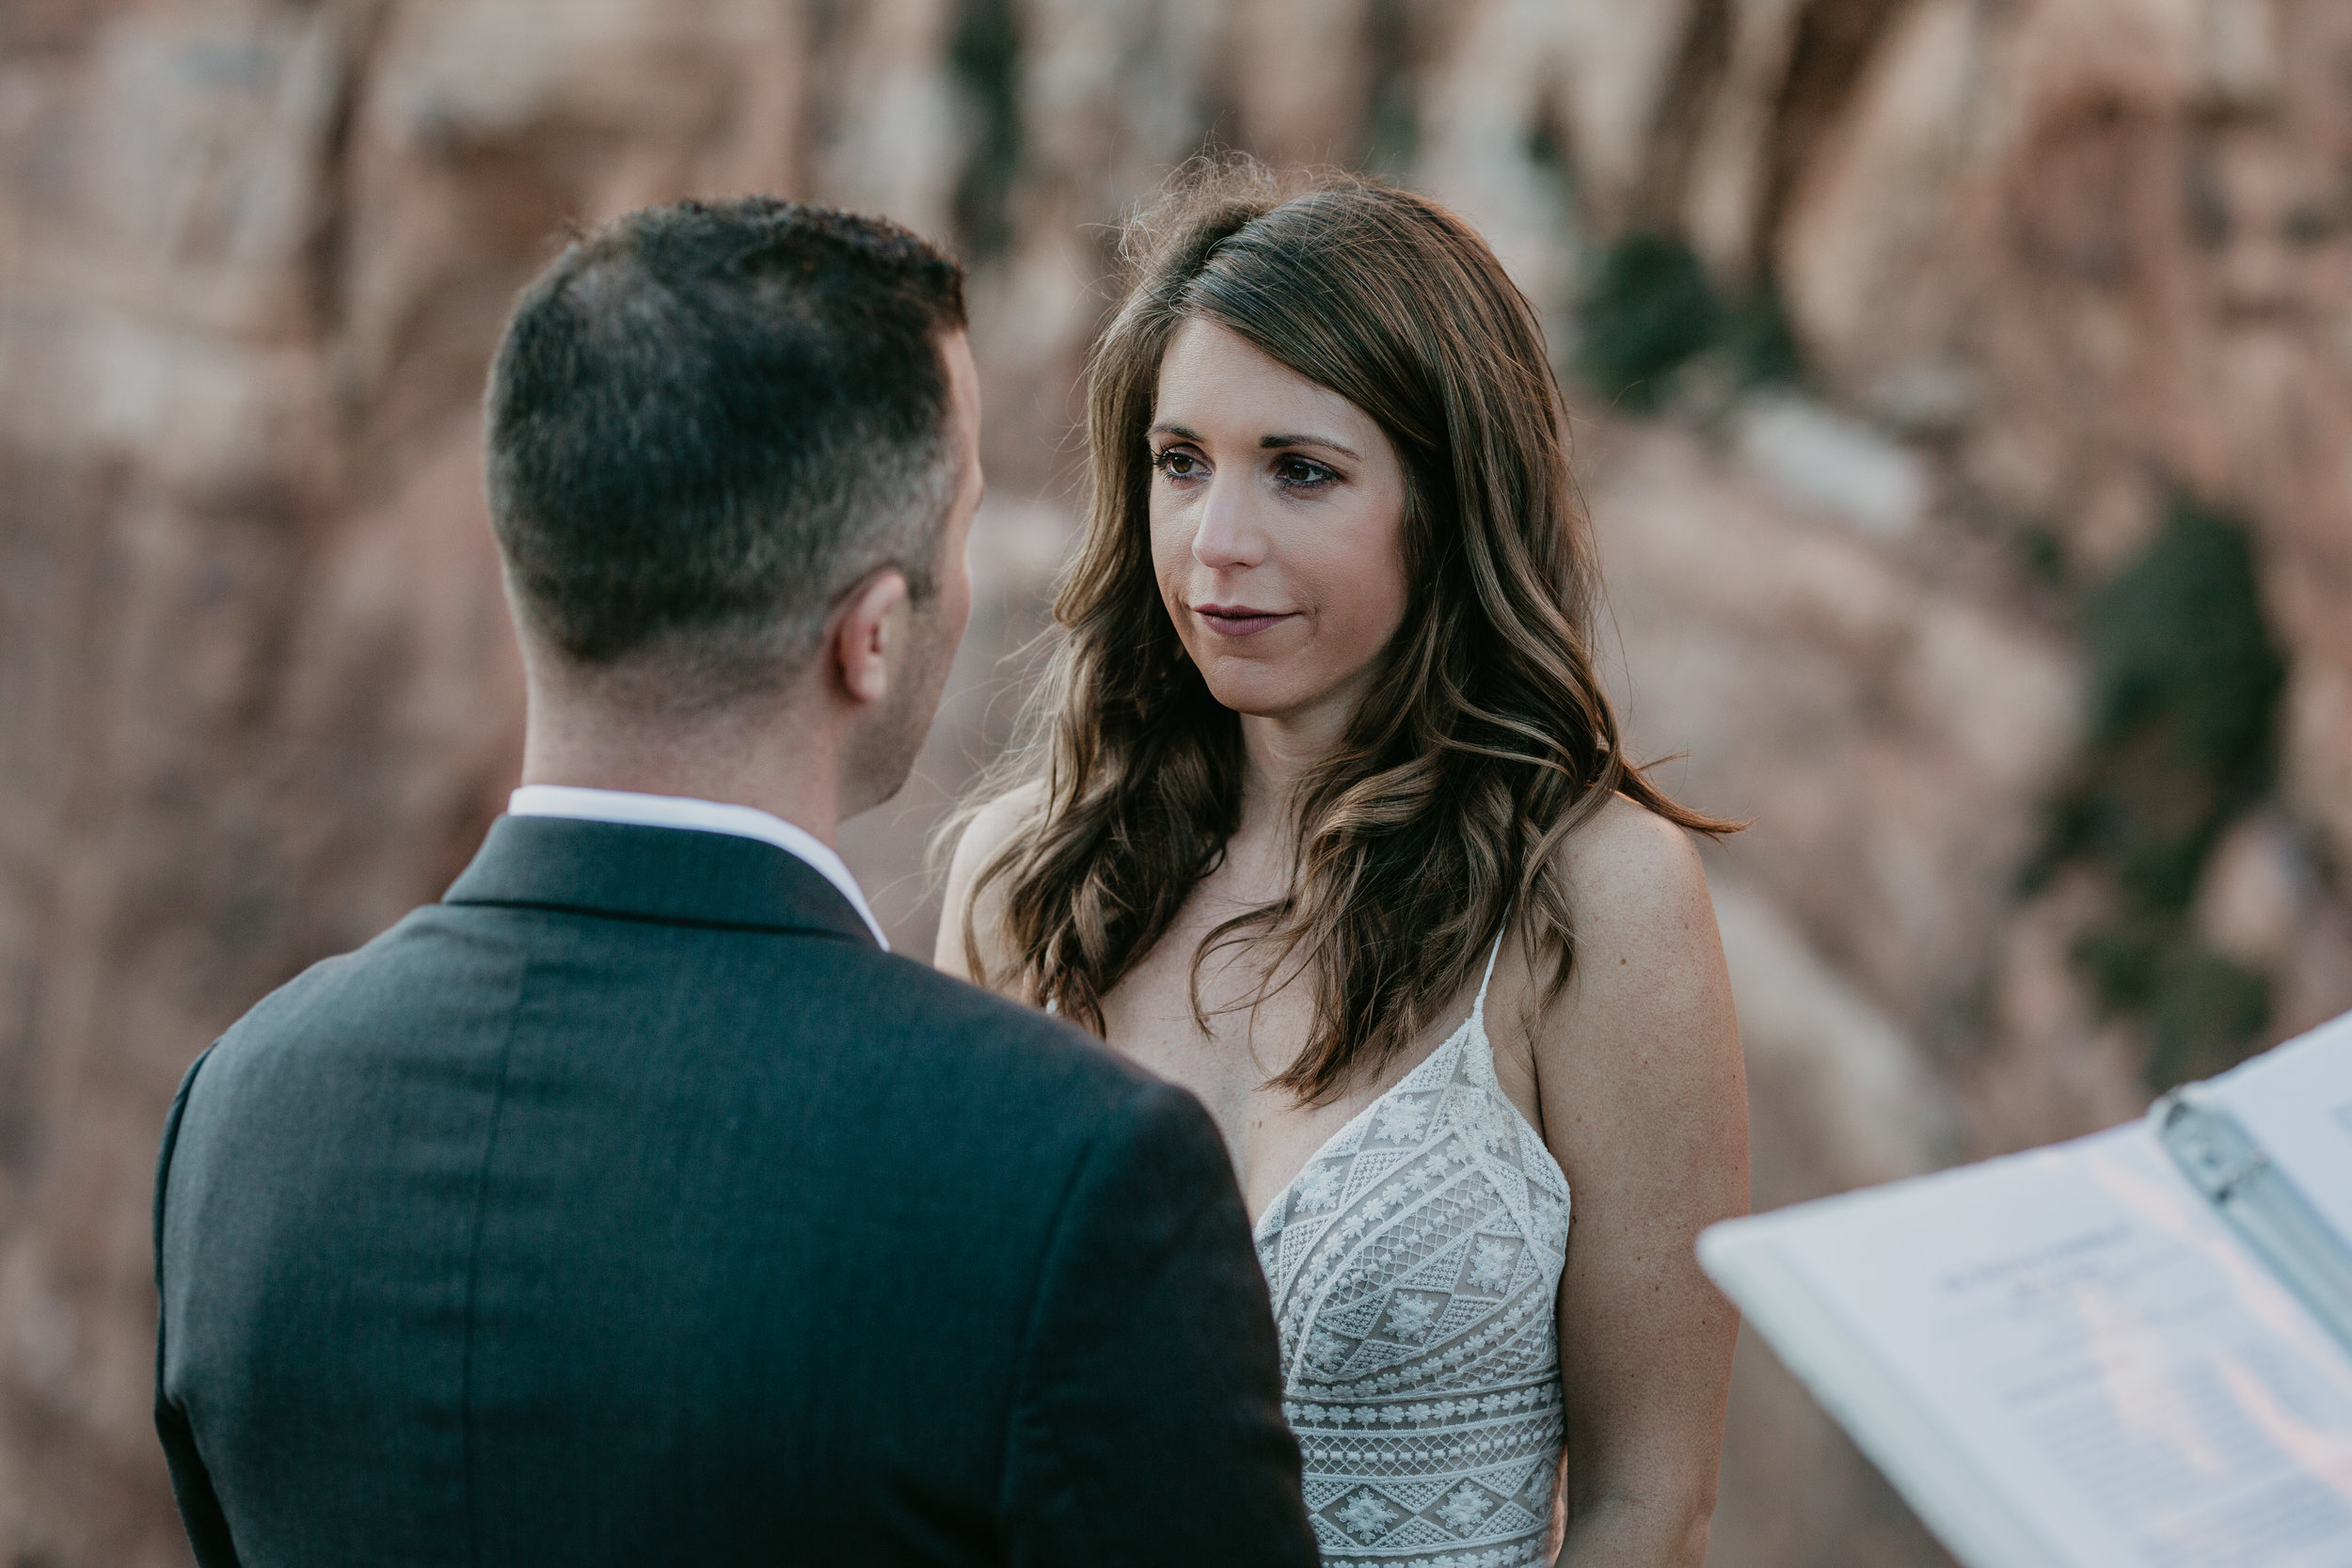 nicole-daacke-photography-zion-national-park-elopement-photographer-canyon-overlook-trail-elope-hiking-adventure-wedding-photos-fall-utah-red-rock-canyon-stgeorge-eloping-photographer-50.jpg